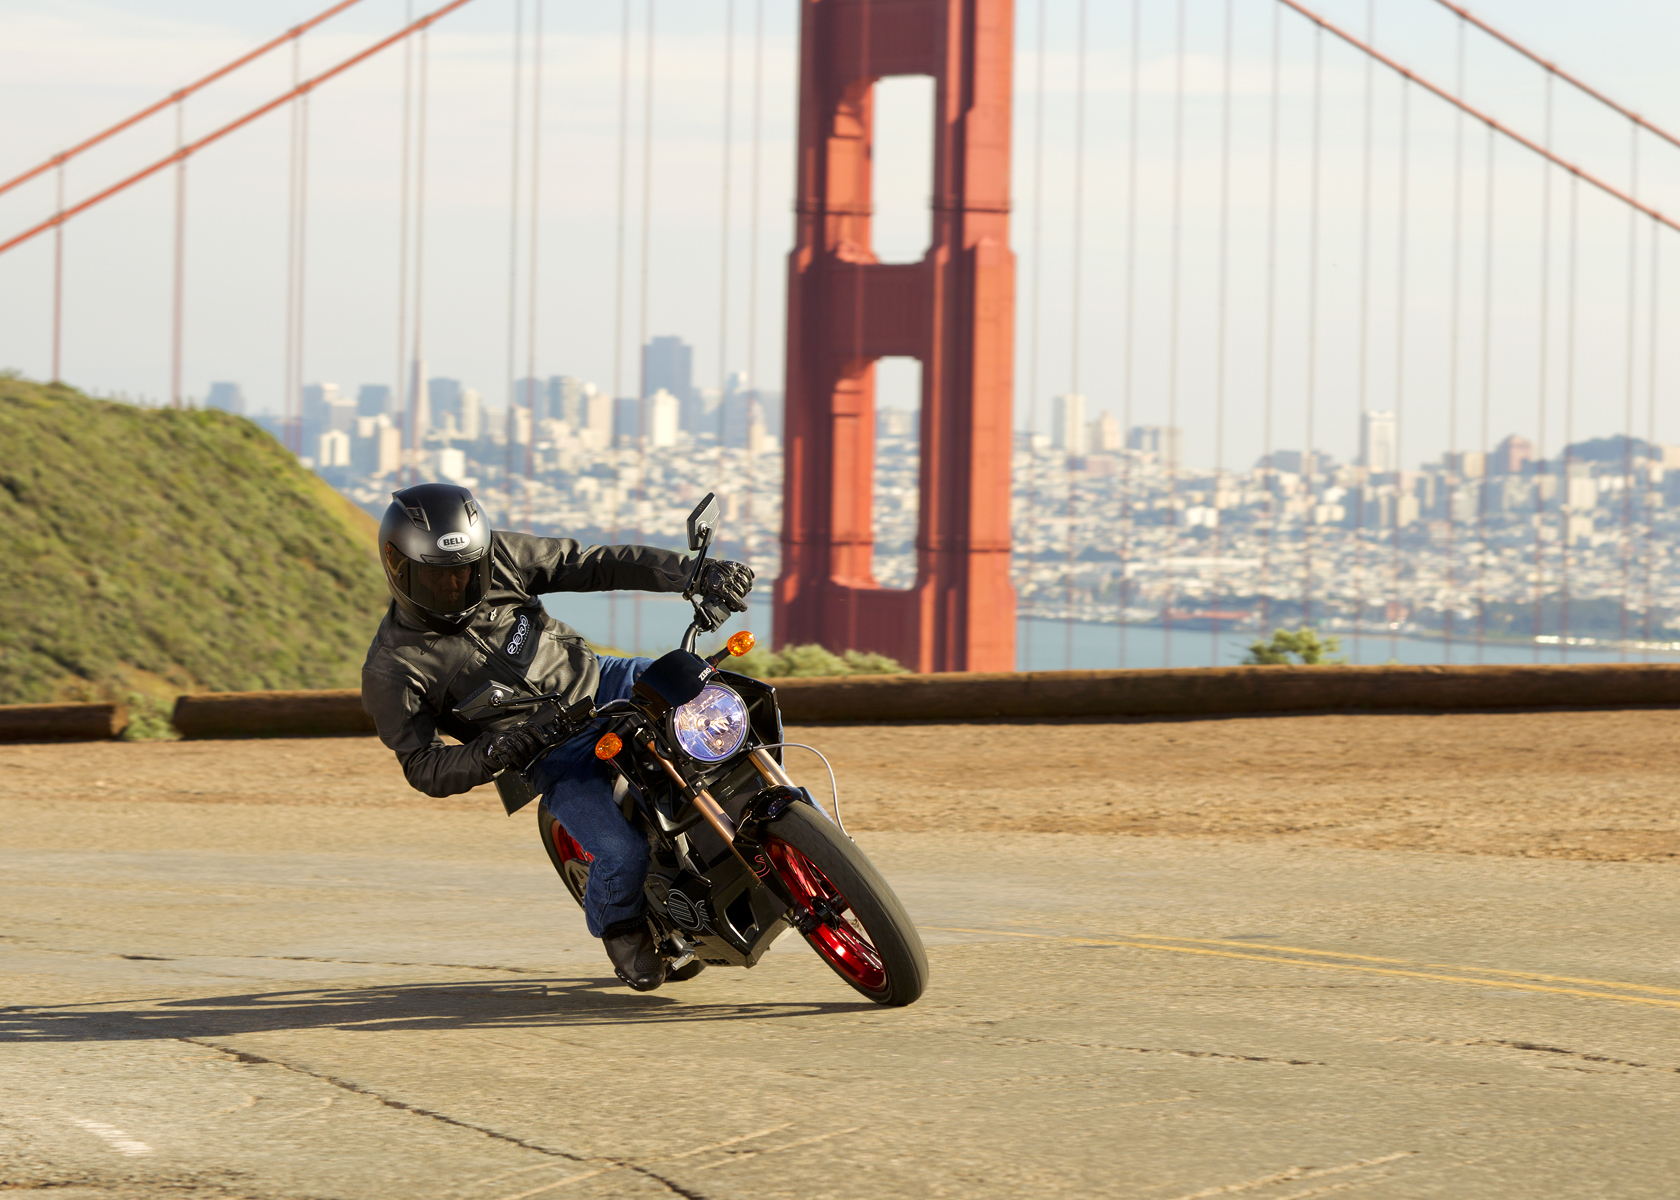 2011 Zero S Electric Motorcycle: Sideways Turn by the Golden Gate Bridge